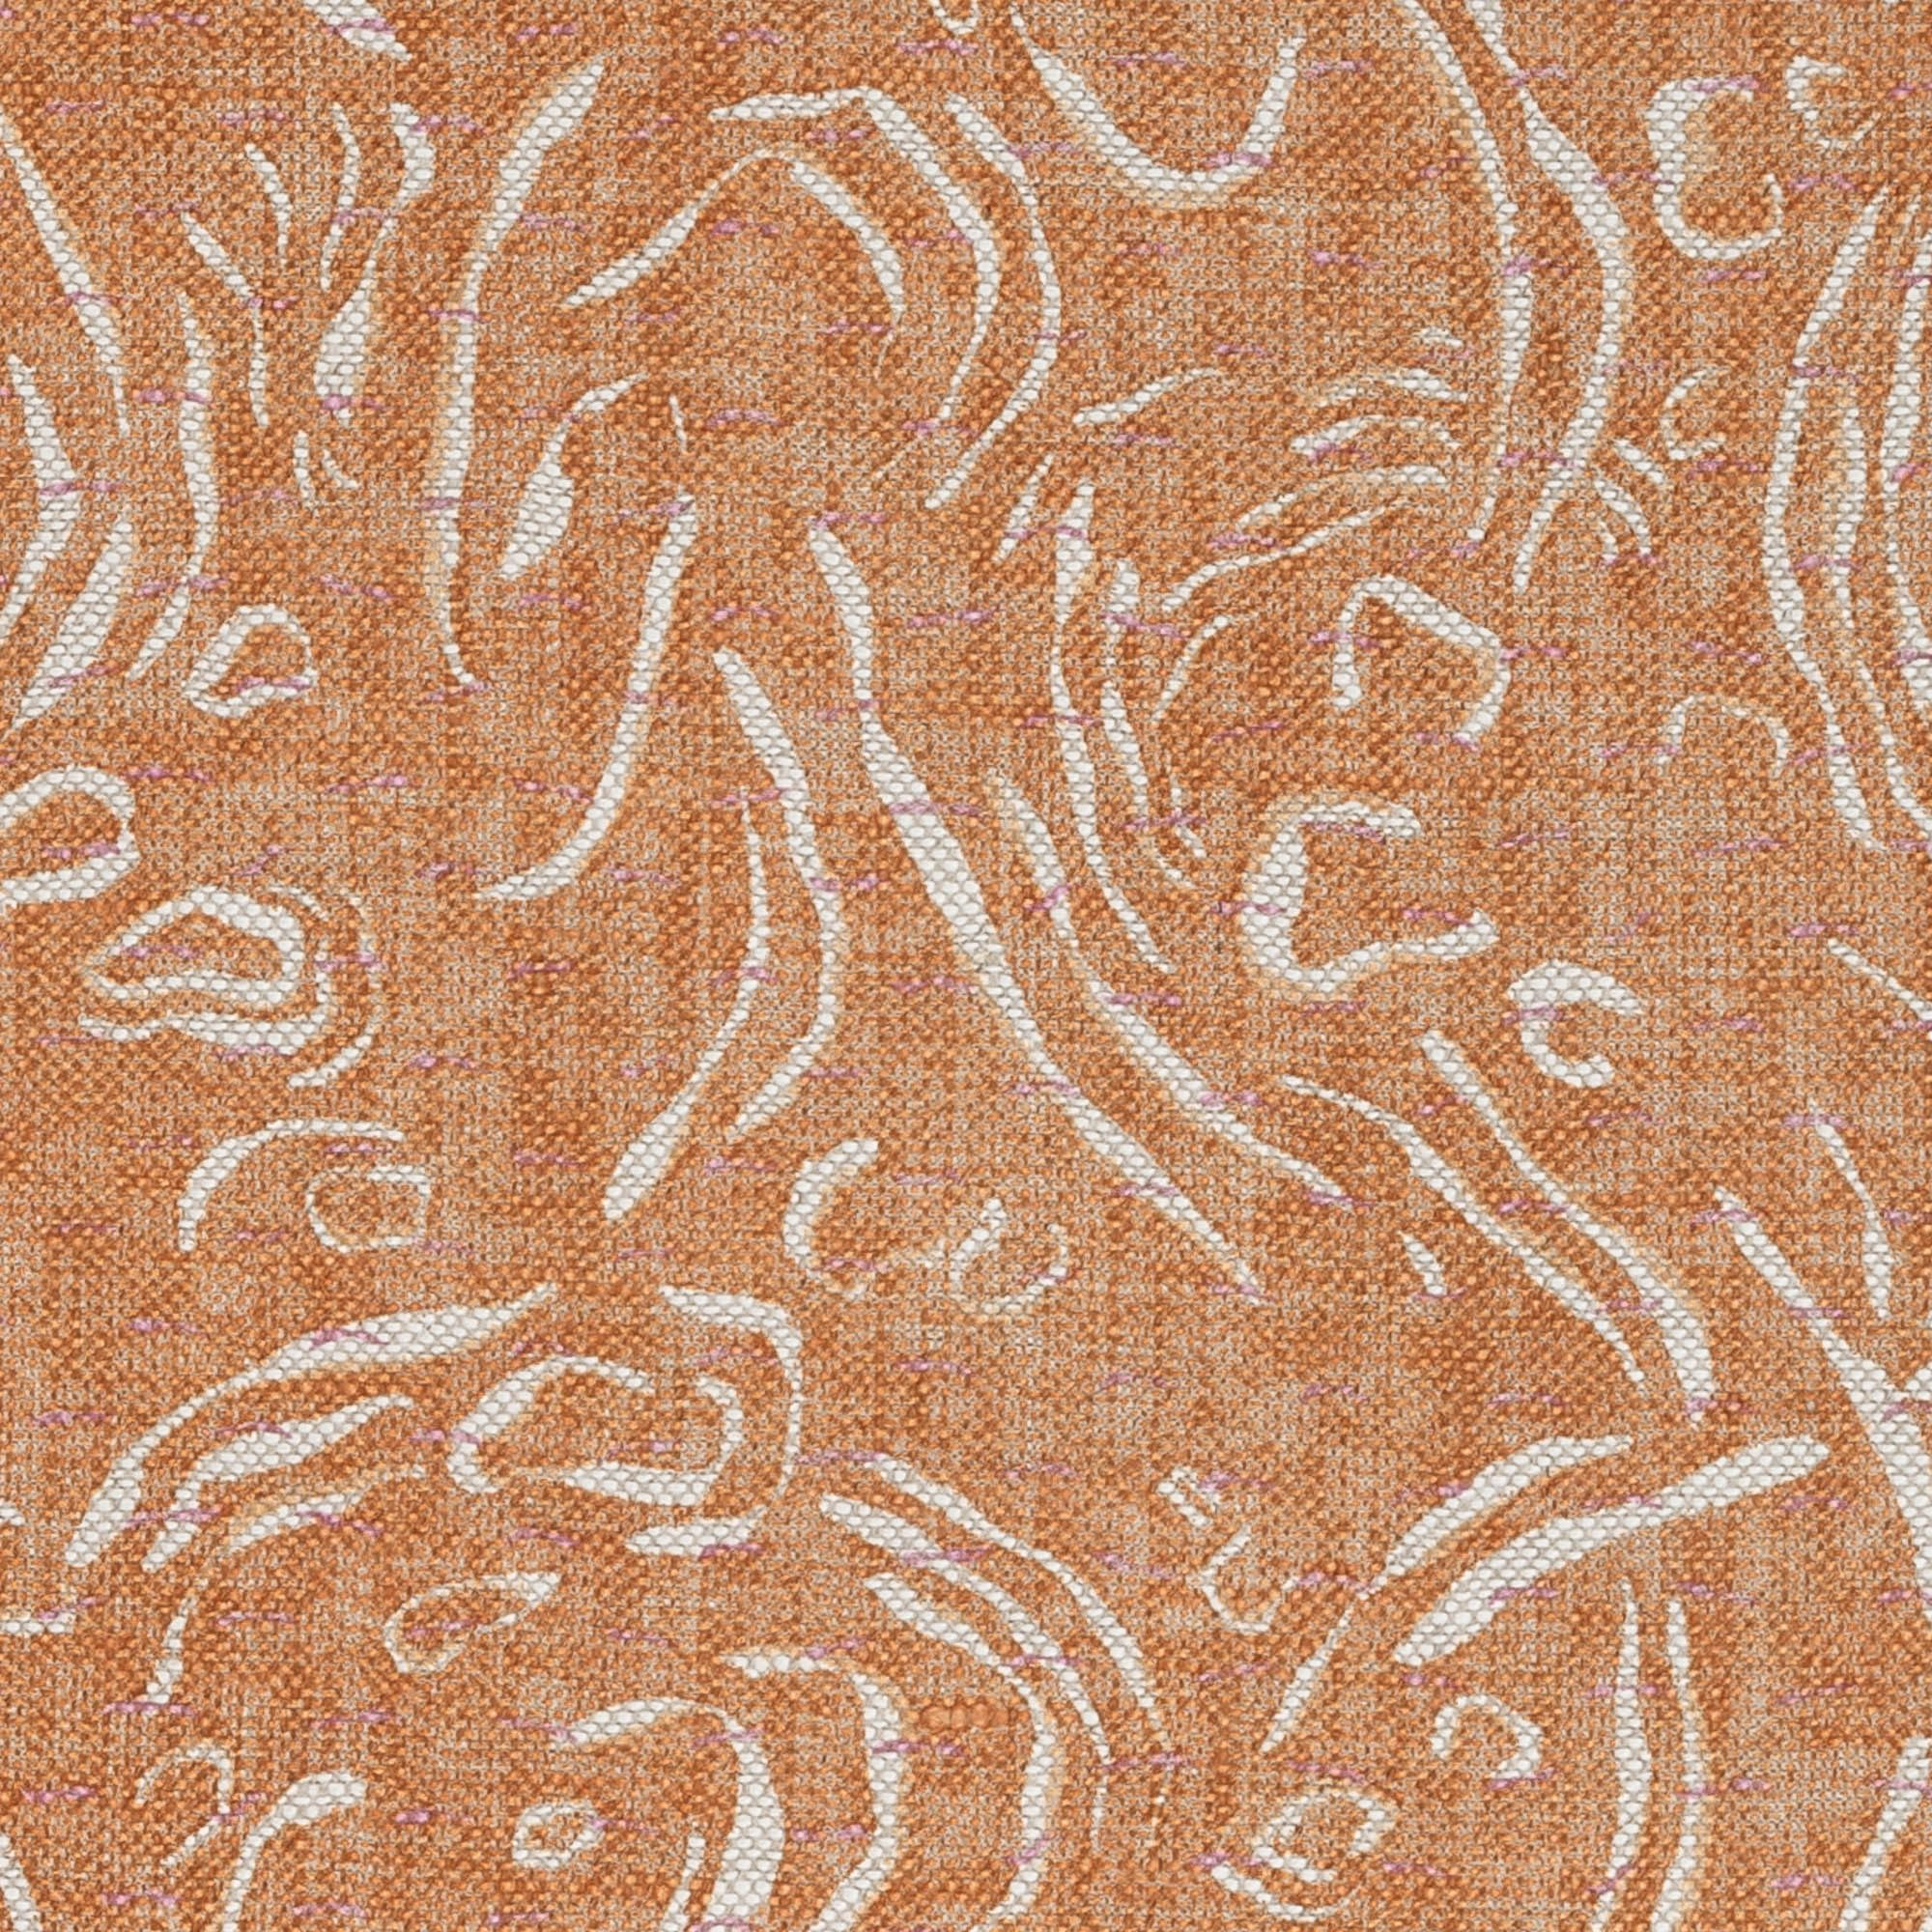 PEBB-005-Chestnut-Pebble-Linen(2)